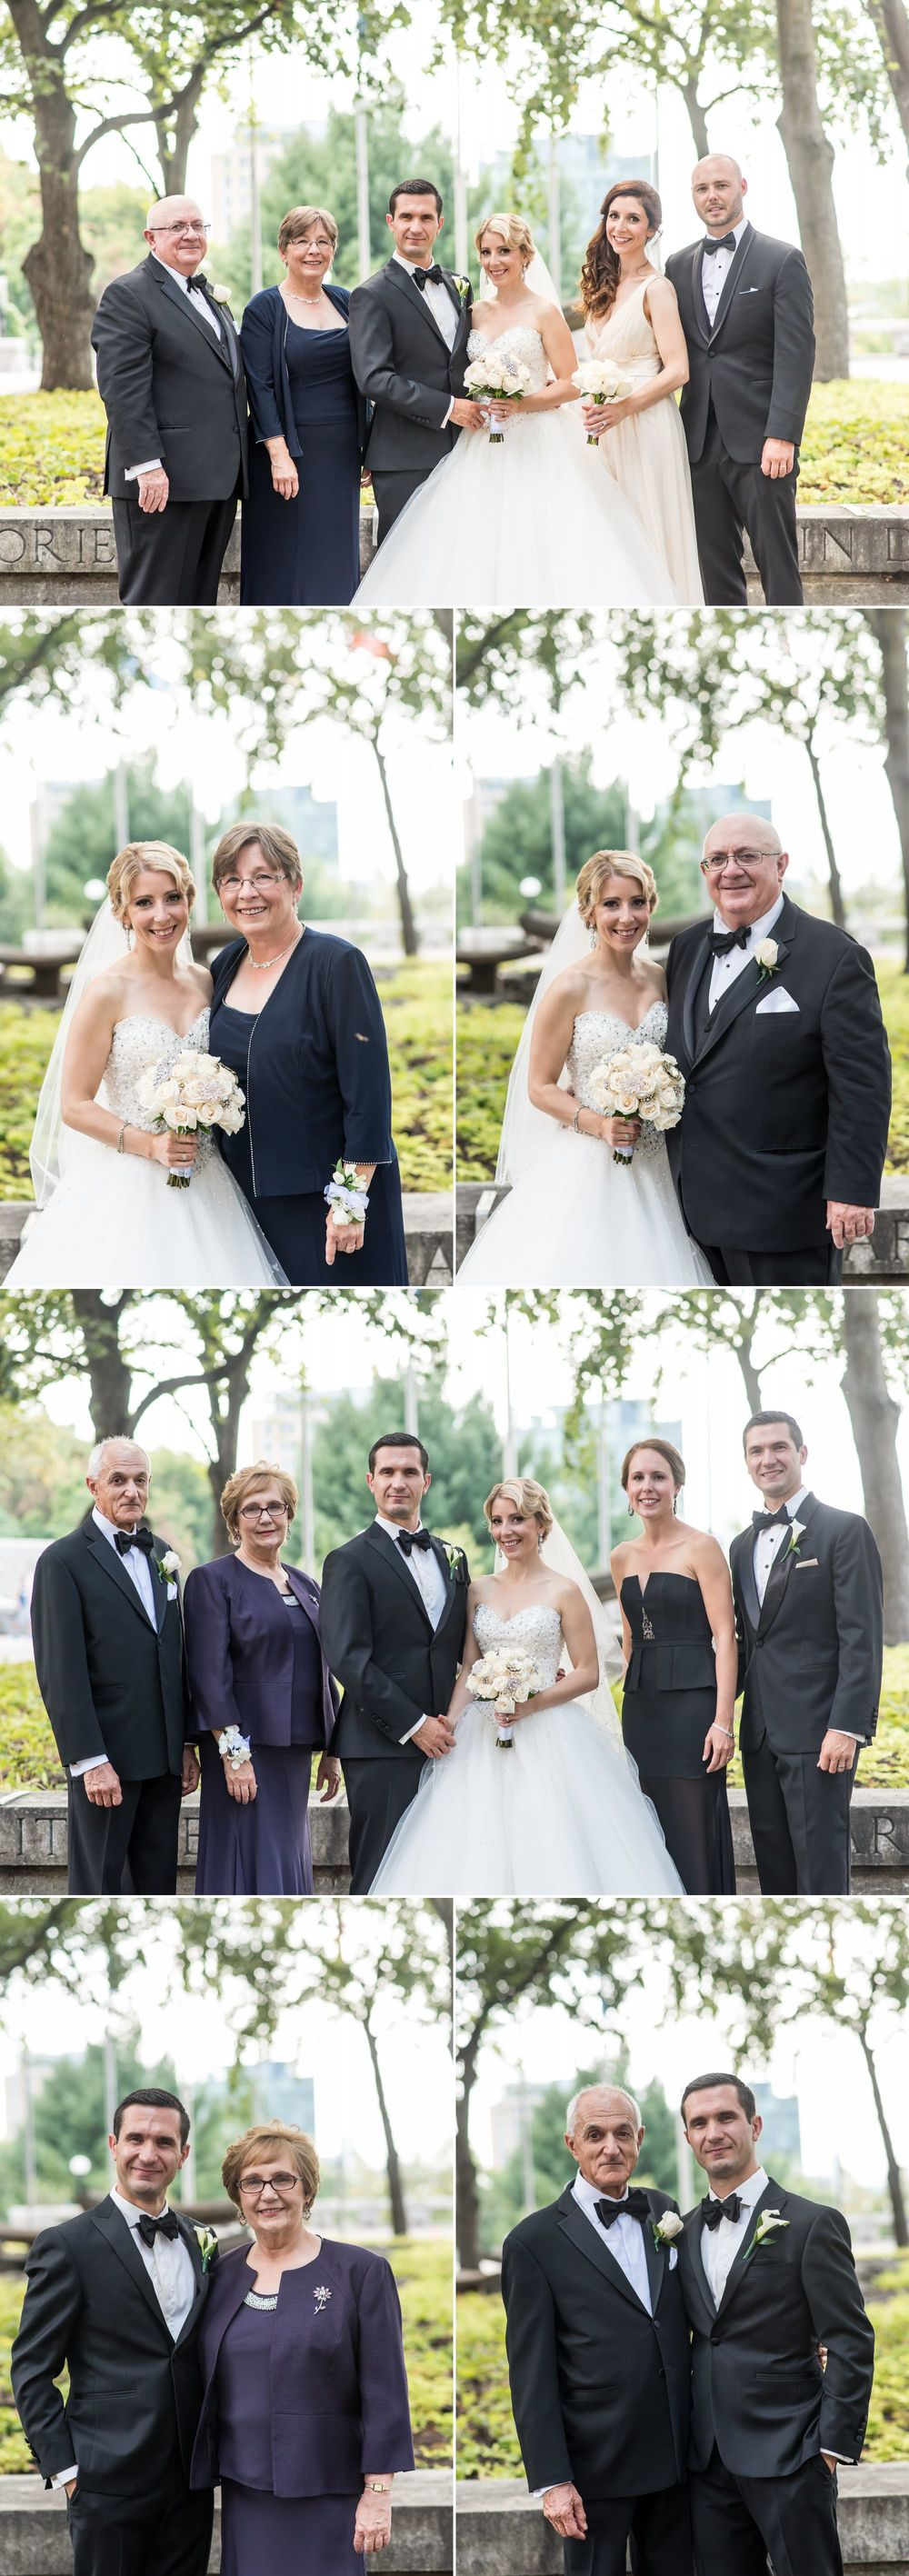 Family formal wedding photographs